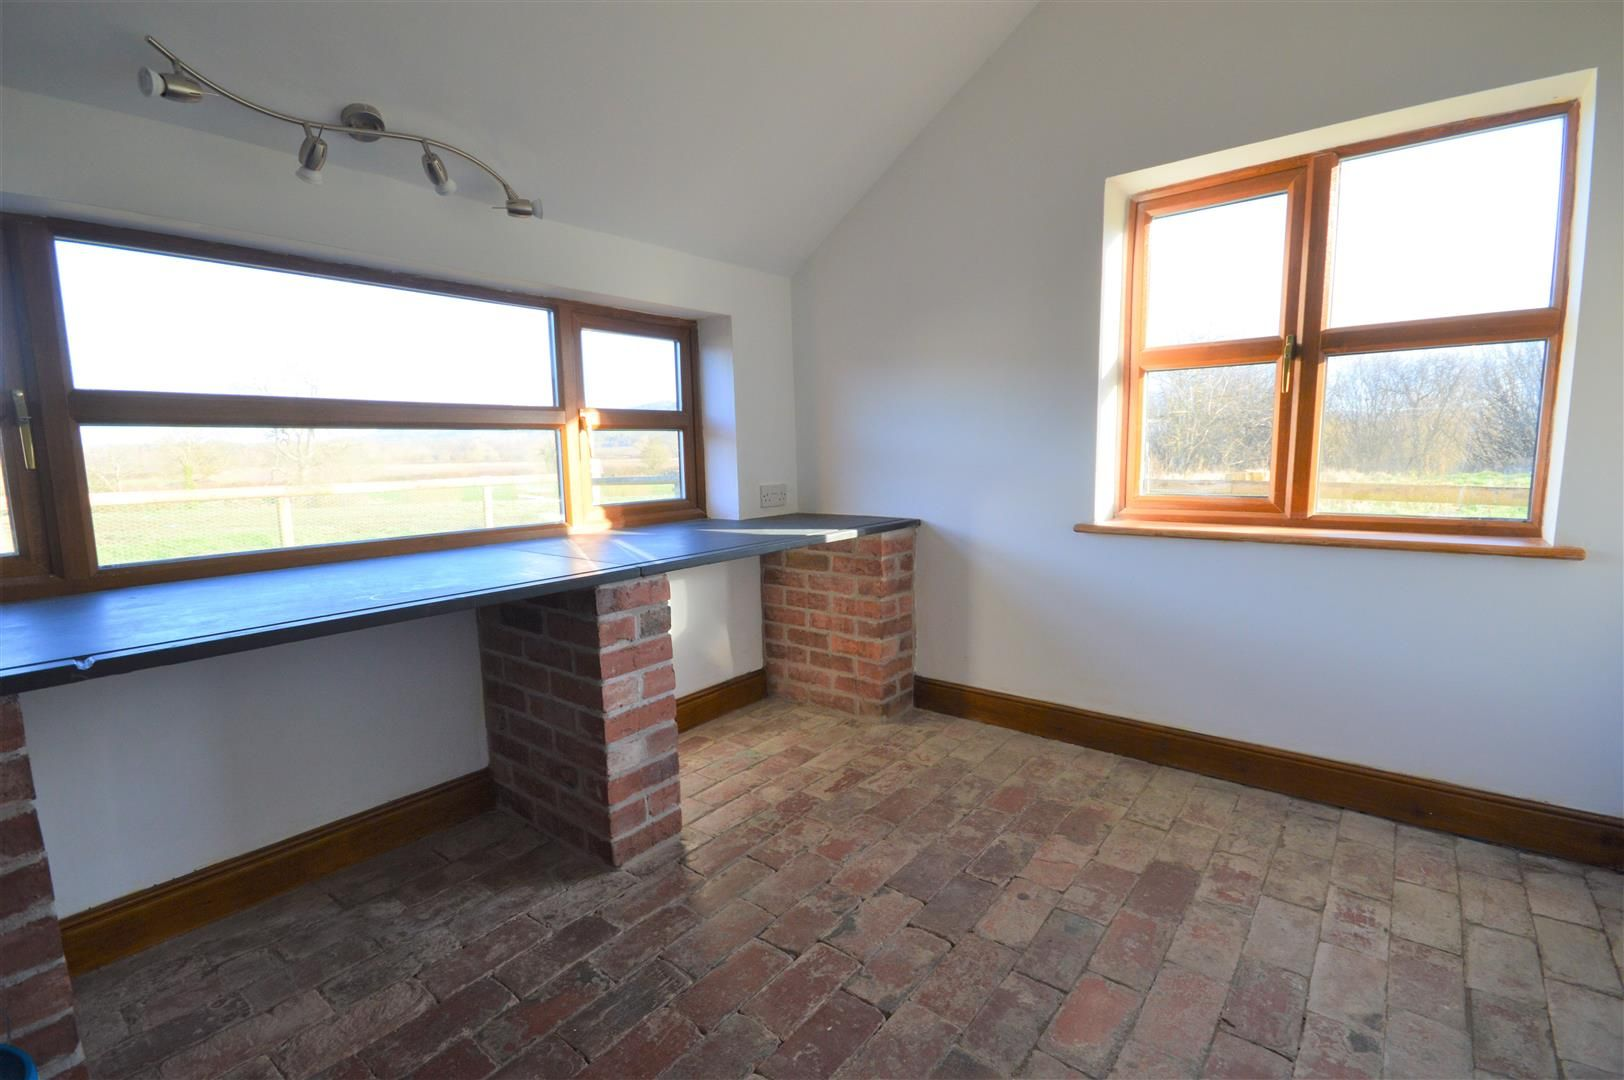 3 bed detached to rent in Preston-On-Wye 6